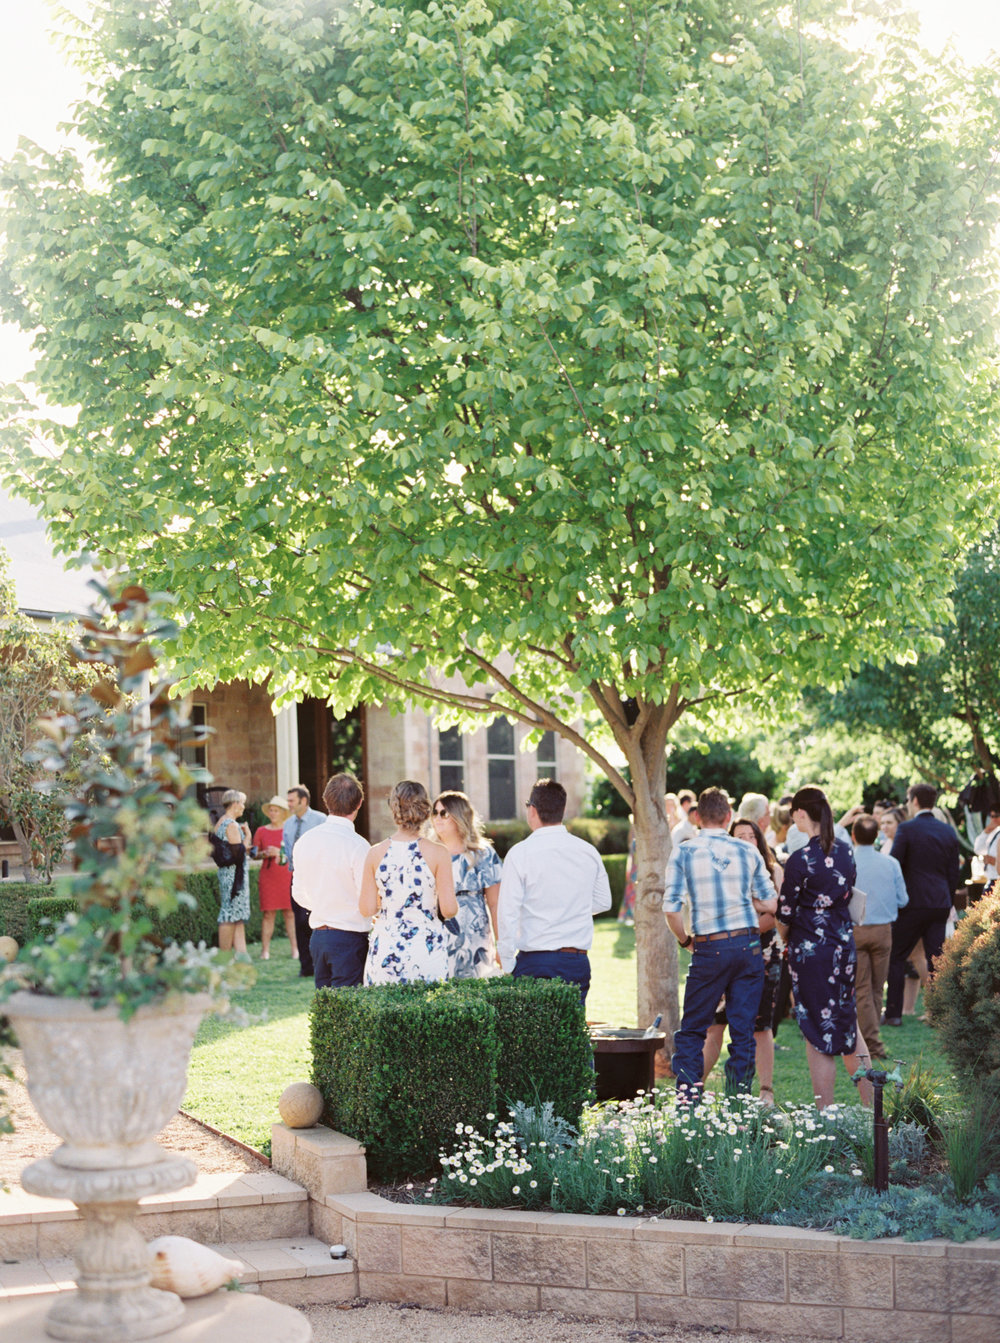 00076- Olive Tree Mediterranean Wedding in Mudgee NSW Australia Fine Art Film Wedding Lifestyle Photographer Sheri McMahon_.jpg